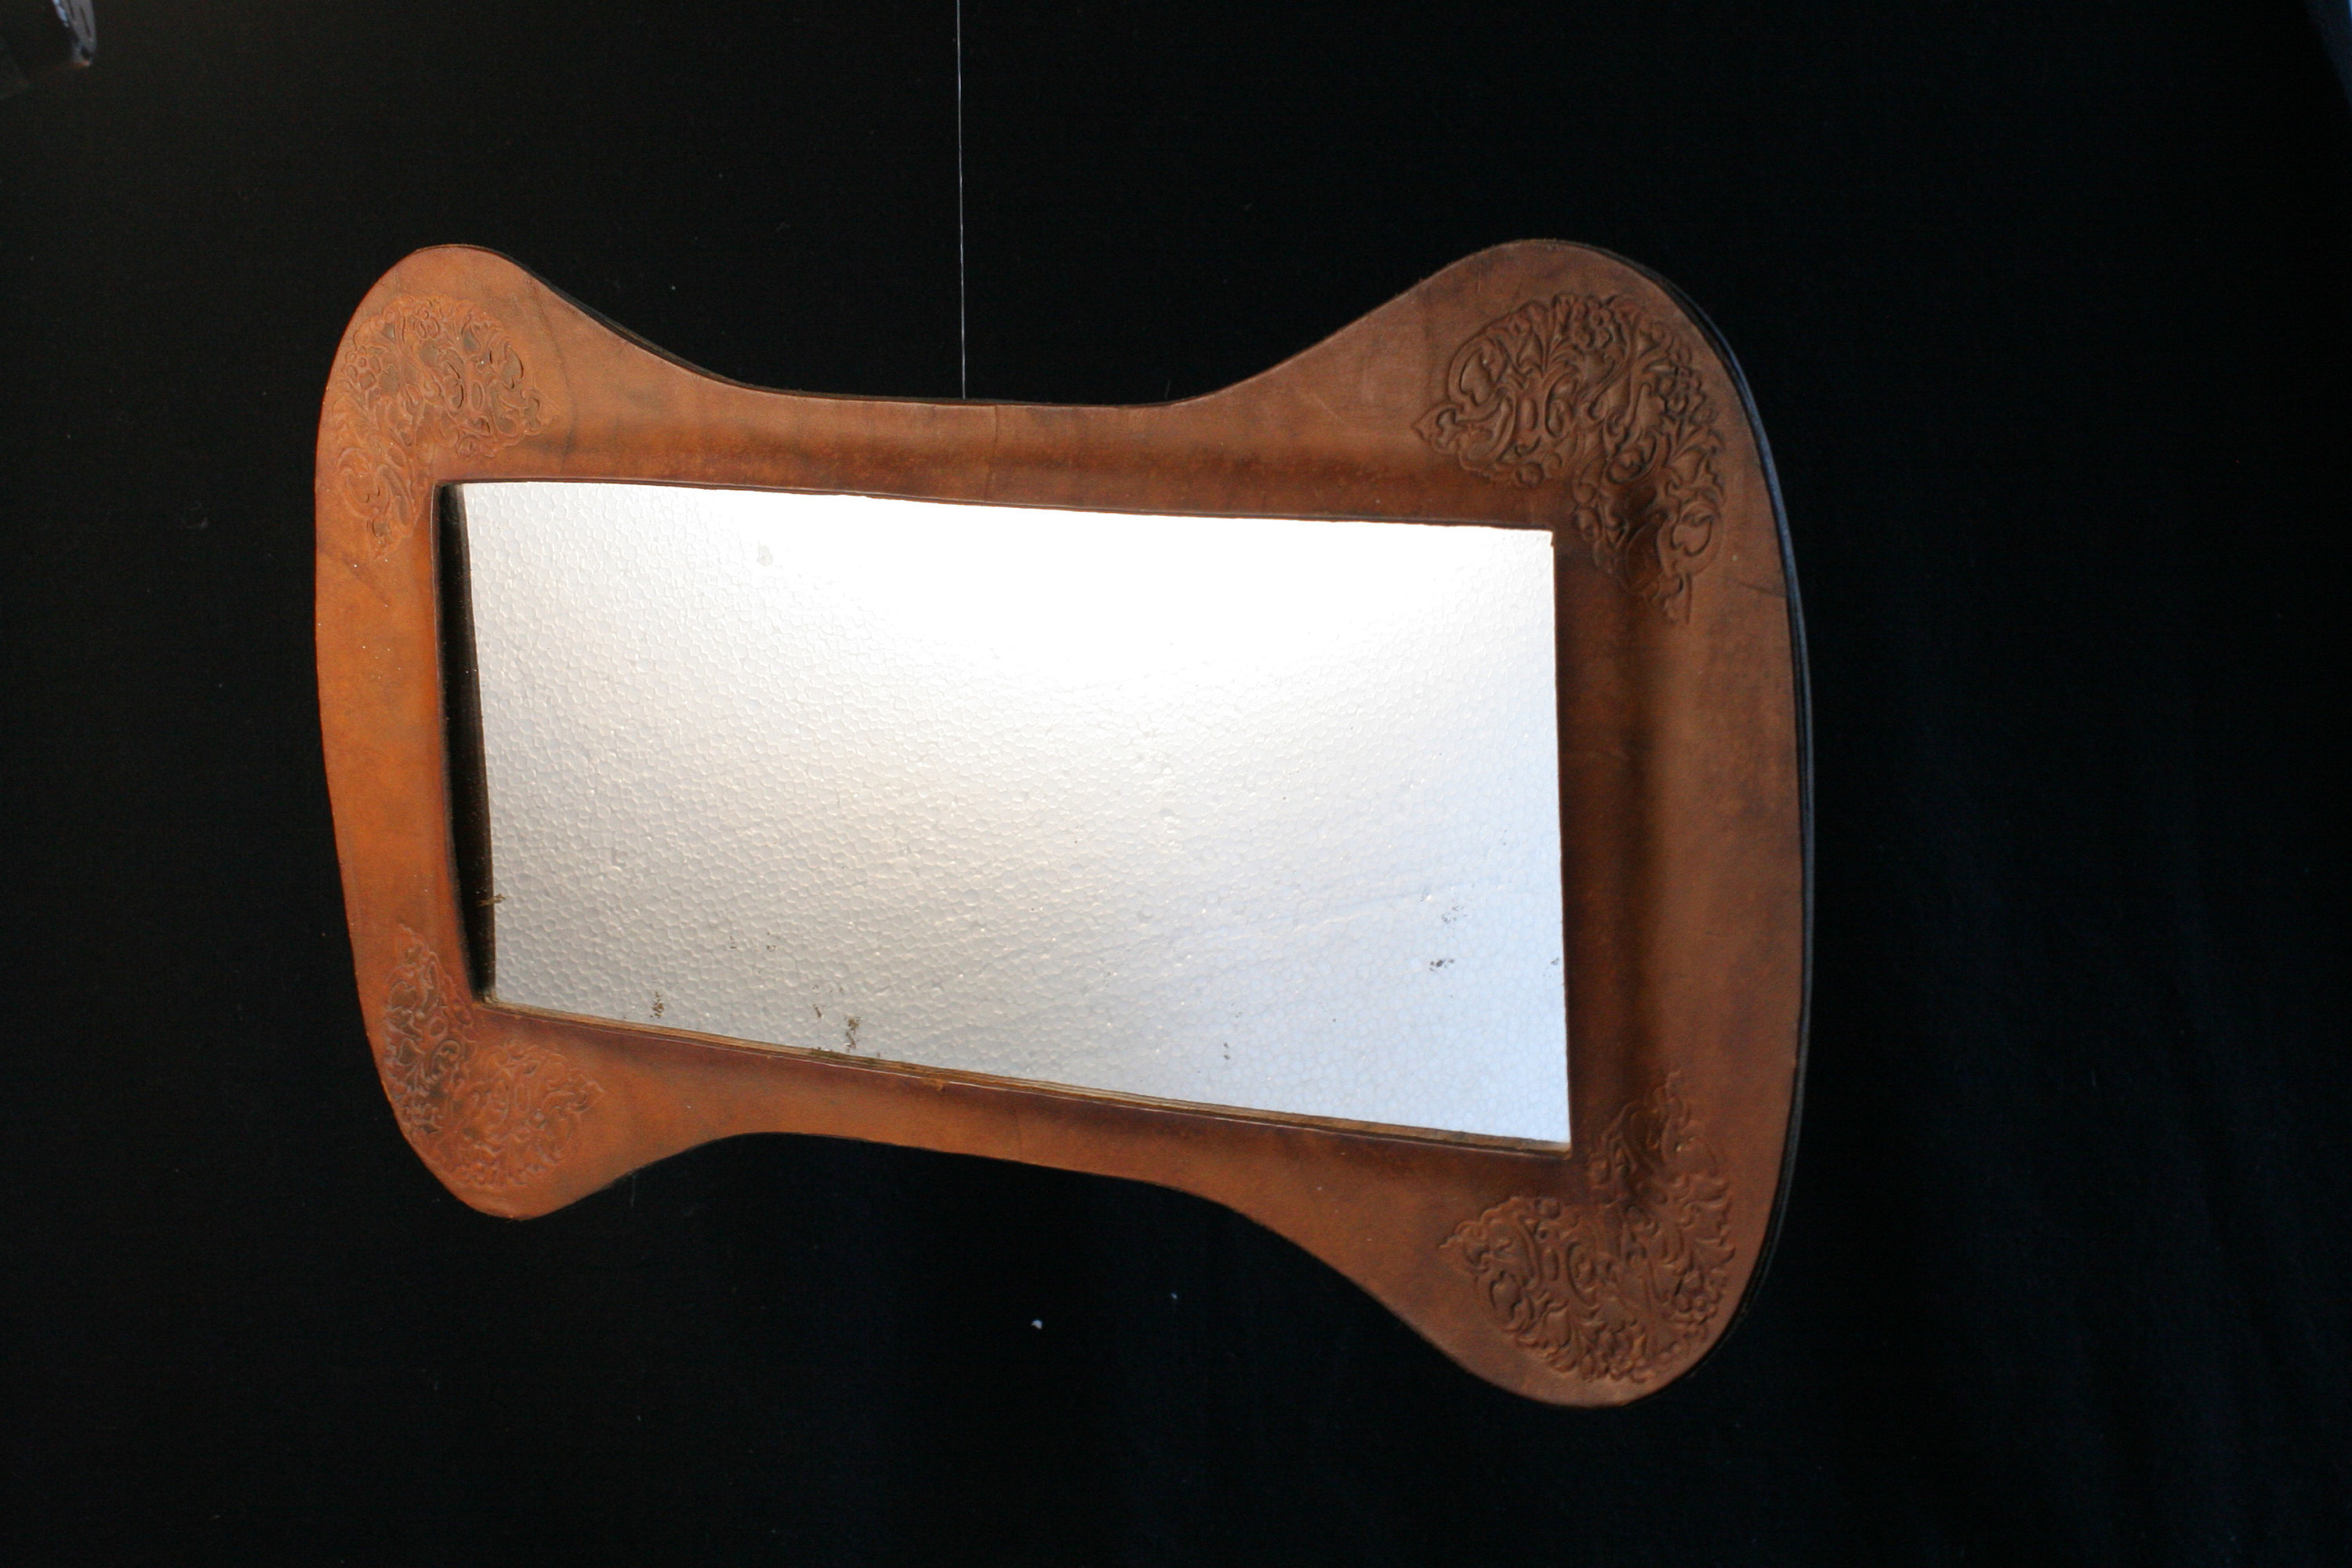 Leather Wall Mirrors Inside Well Known Leather Wall Mirror, Vintage Landscape Mirror, French Or North African Free Form Horizontal Tooled Mirror / 1960S 70S (View 17 of 20)